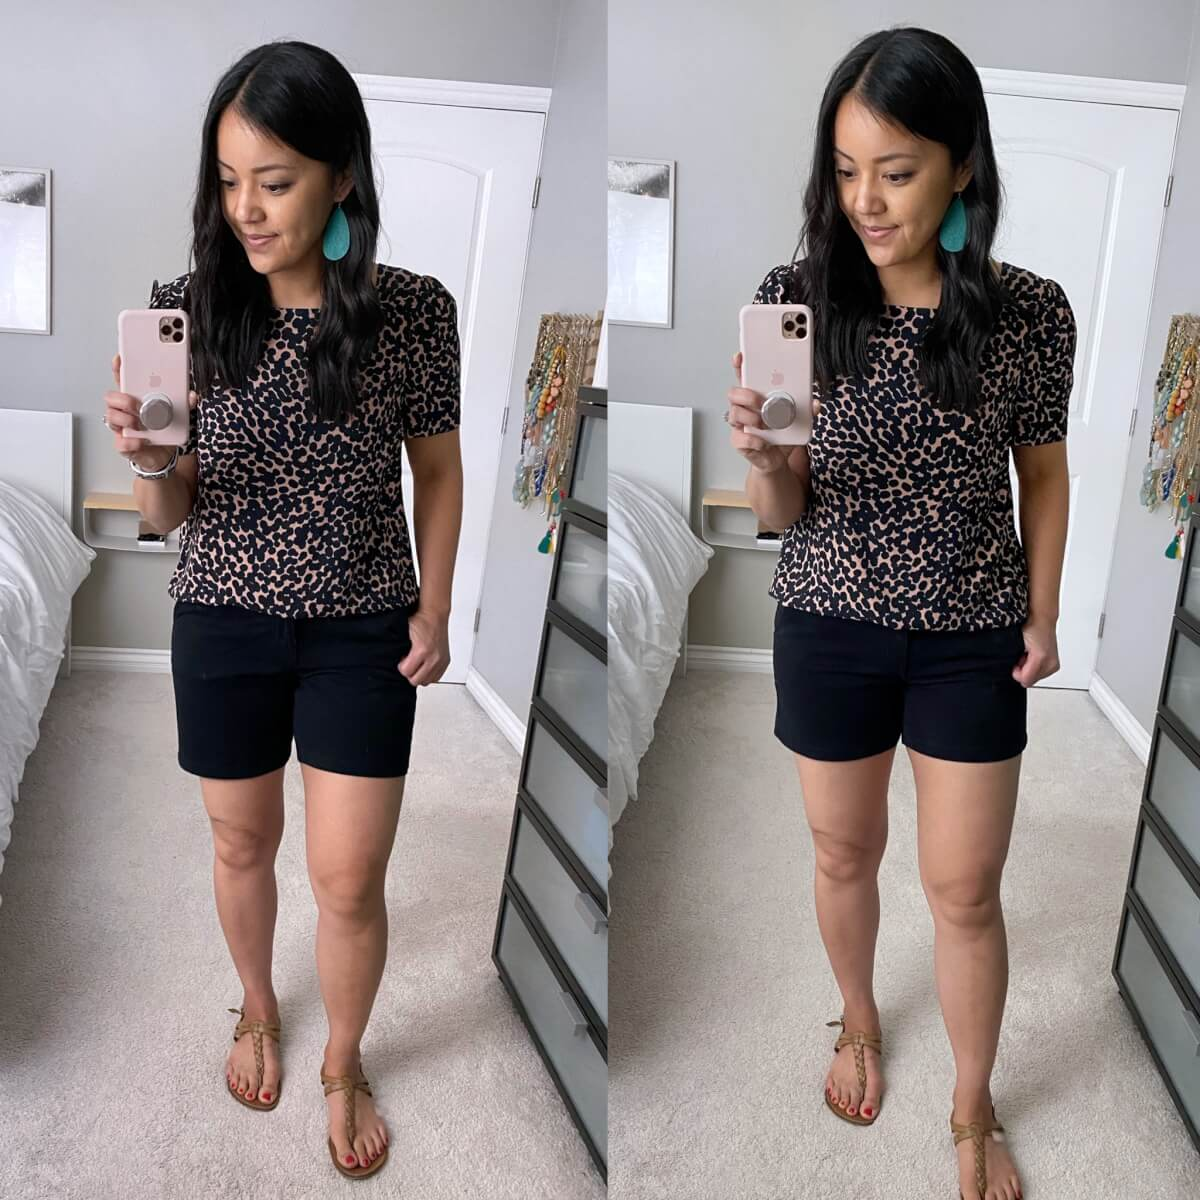 Nicer Casual Outfit: Lark & Ro square neck black and camel spotted blouse + black shorts + nude t-strap sandals + teal earrings